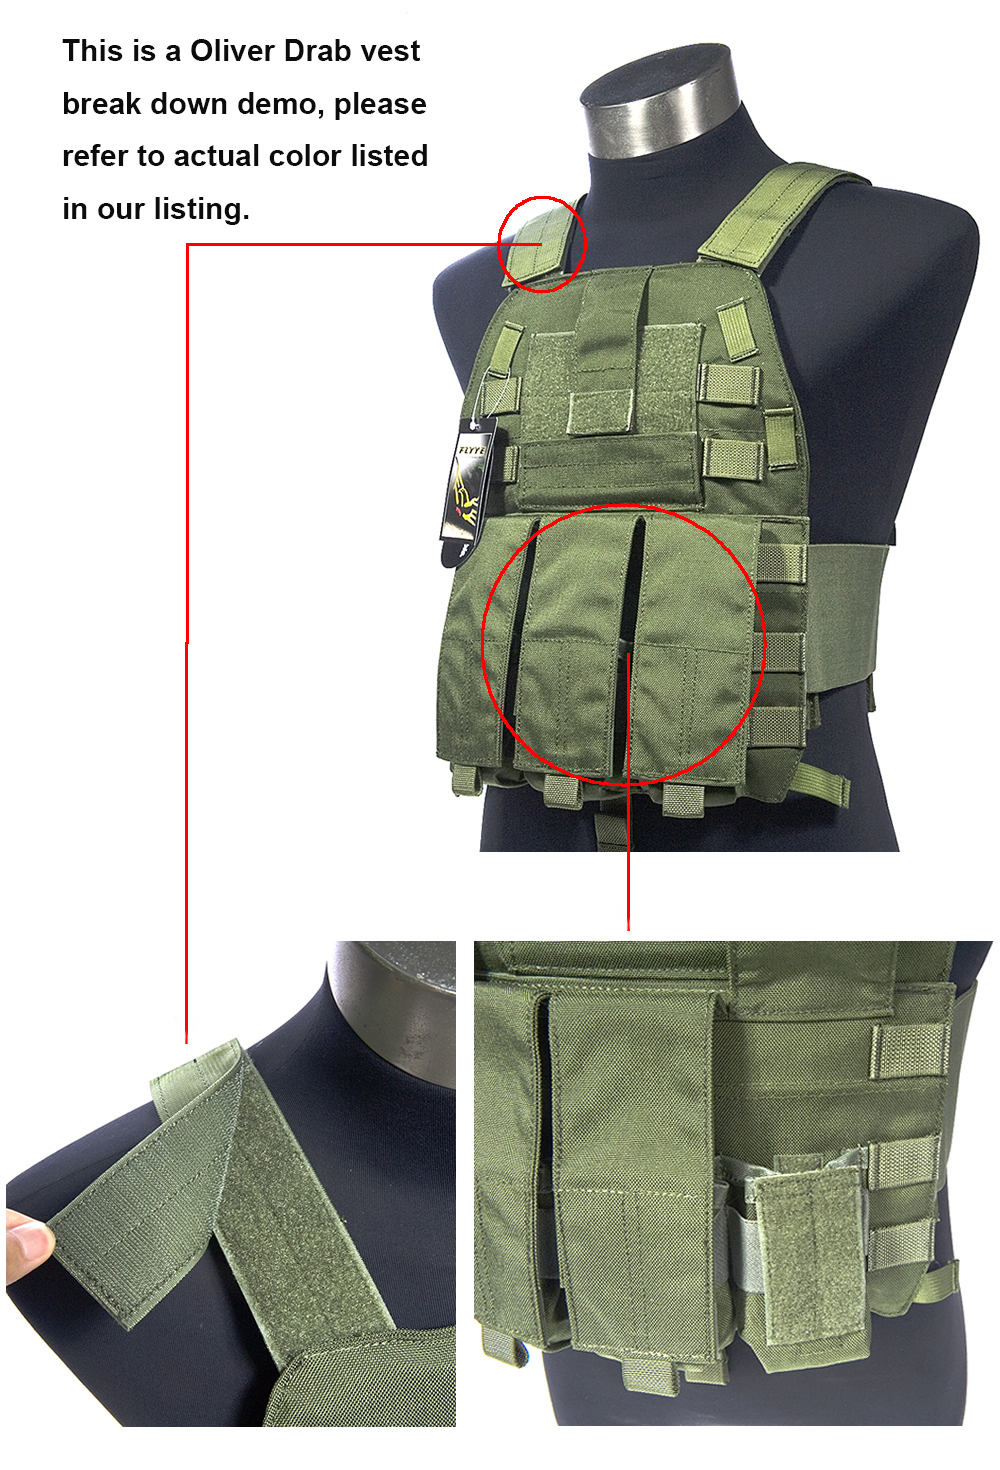 MILITECH Mil Spec Military LT6094K Oliver Drab OD Plate Carrier Combat Molle Tactical Vest Army Military Combat Vests Carrier djt10f21 11jb [ circular mil spec connectors djt 11c 11 12 skt re] mr li